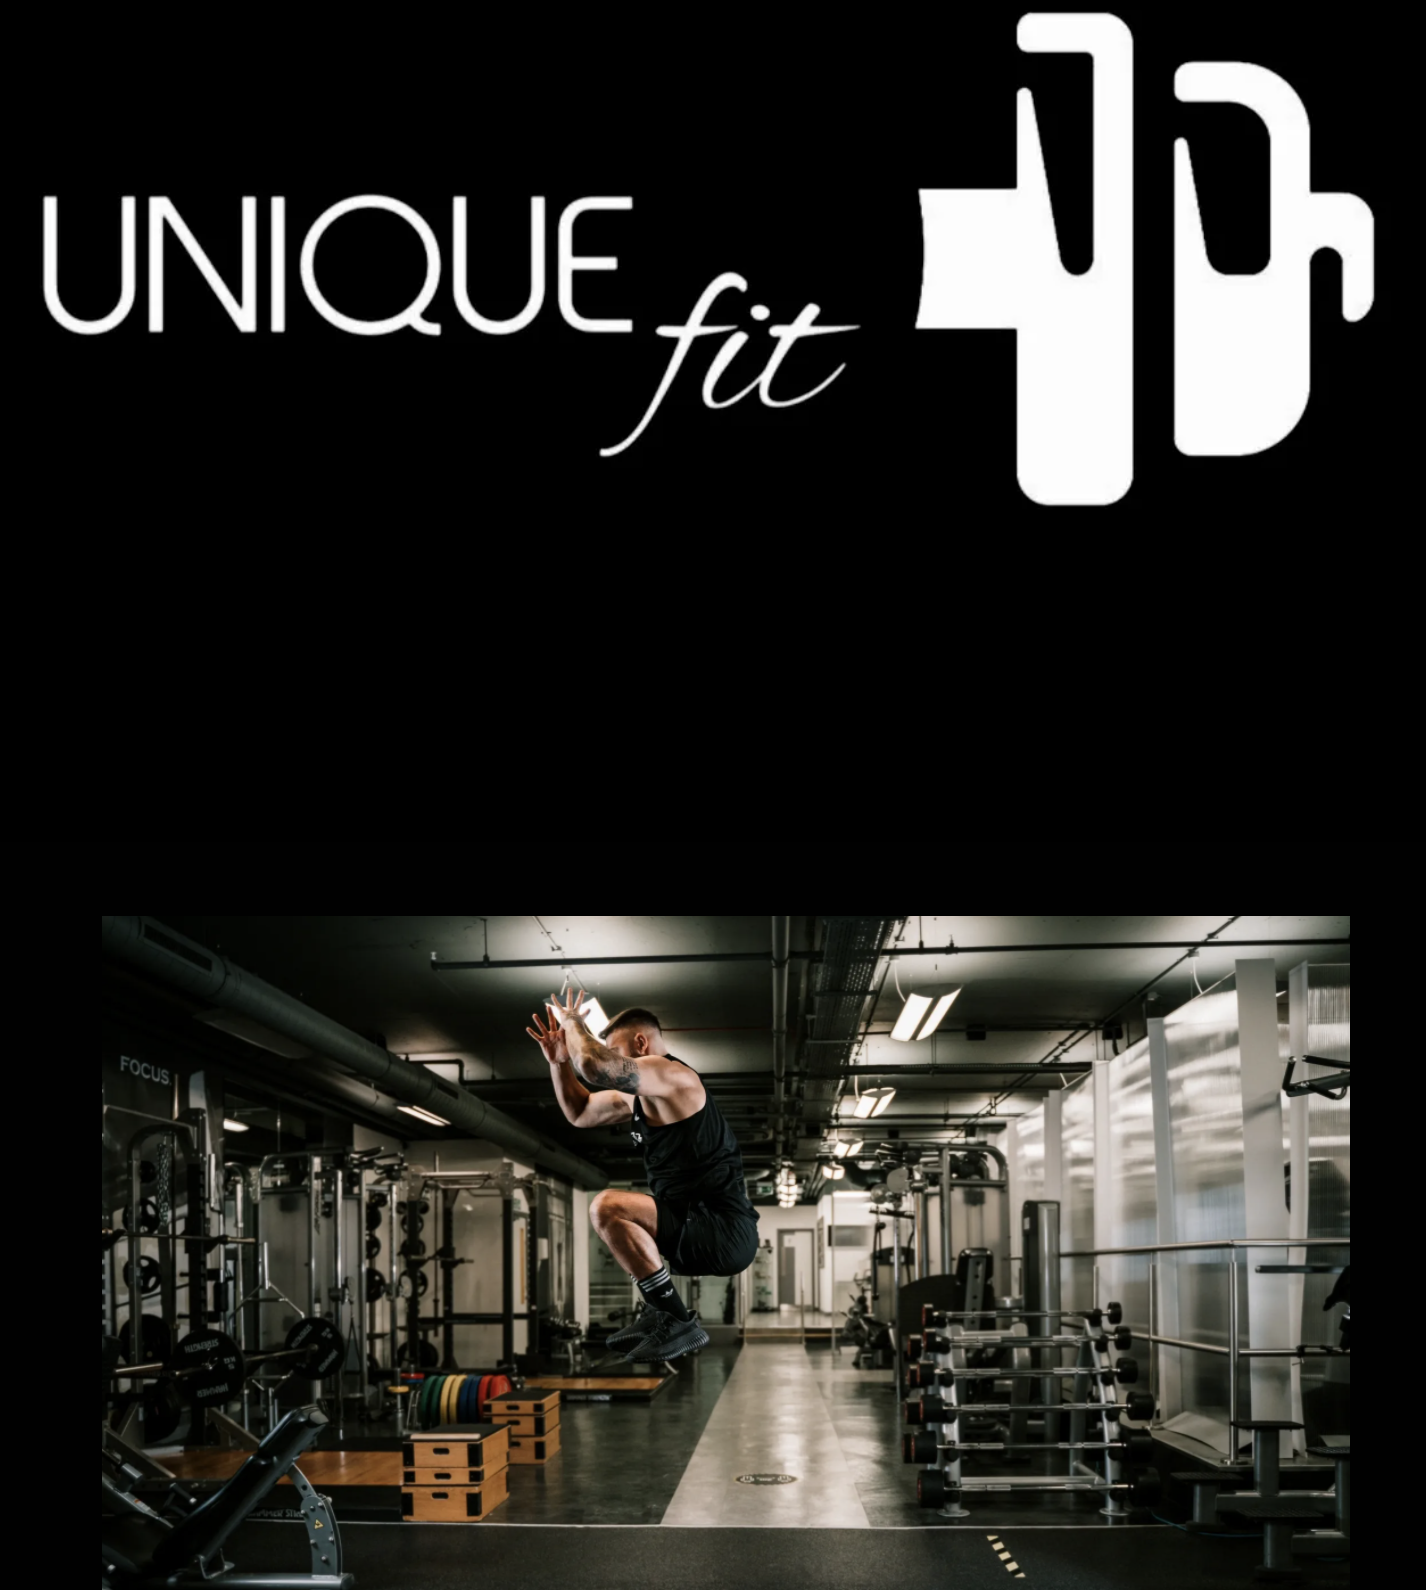 Fitness Expert Joss Garnier, Launches The Unique Fit App For All the Workout-From-Home Enthusiasts